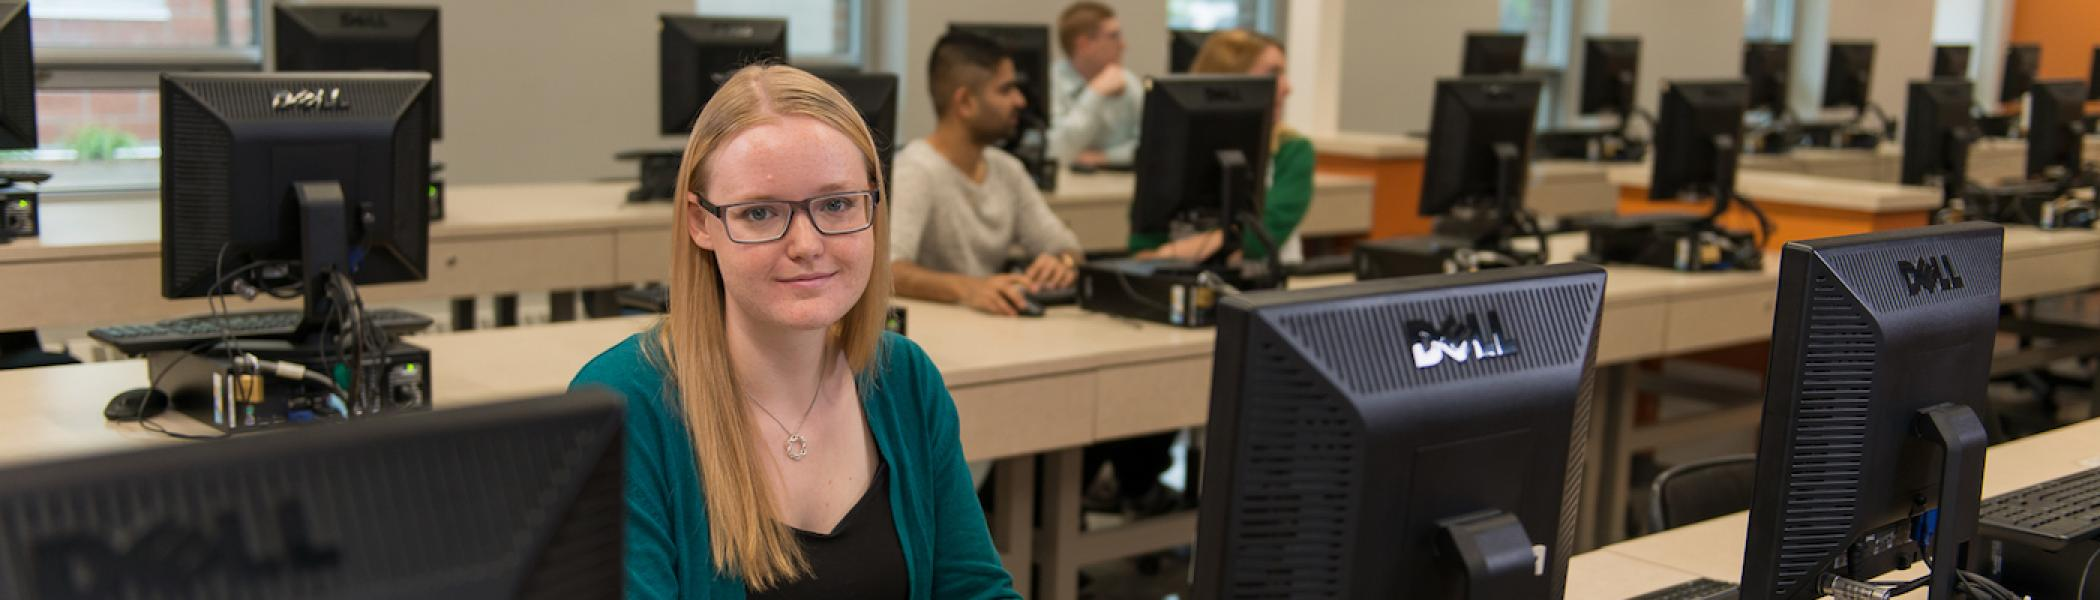 A girl working on a computer smiling